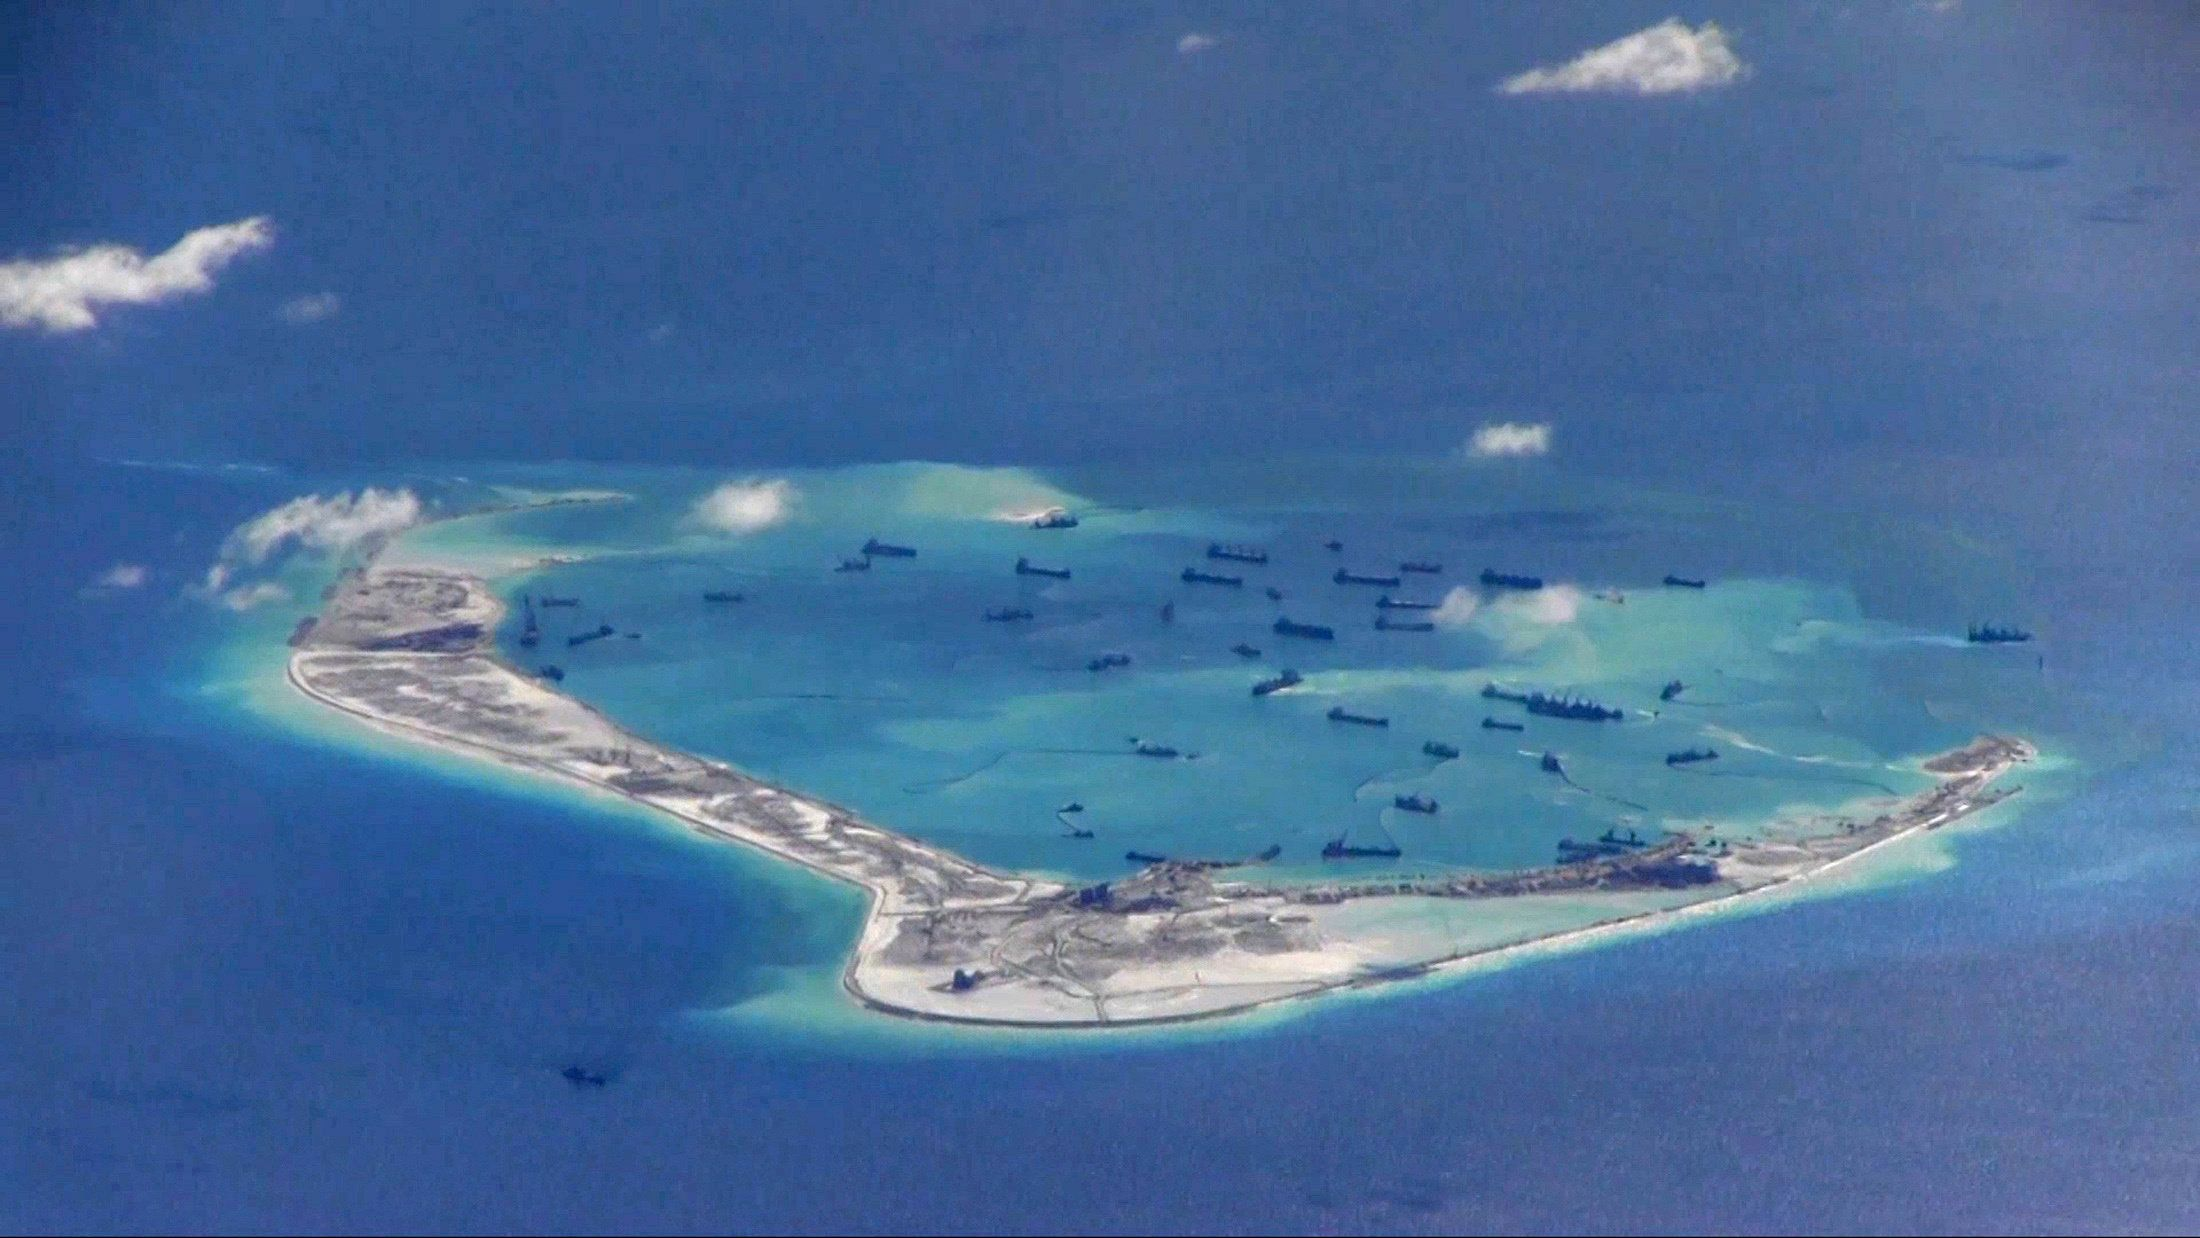 New Images Suggest China Building Aircraft Hangars On Disputed